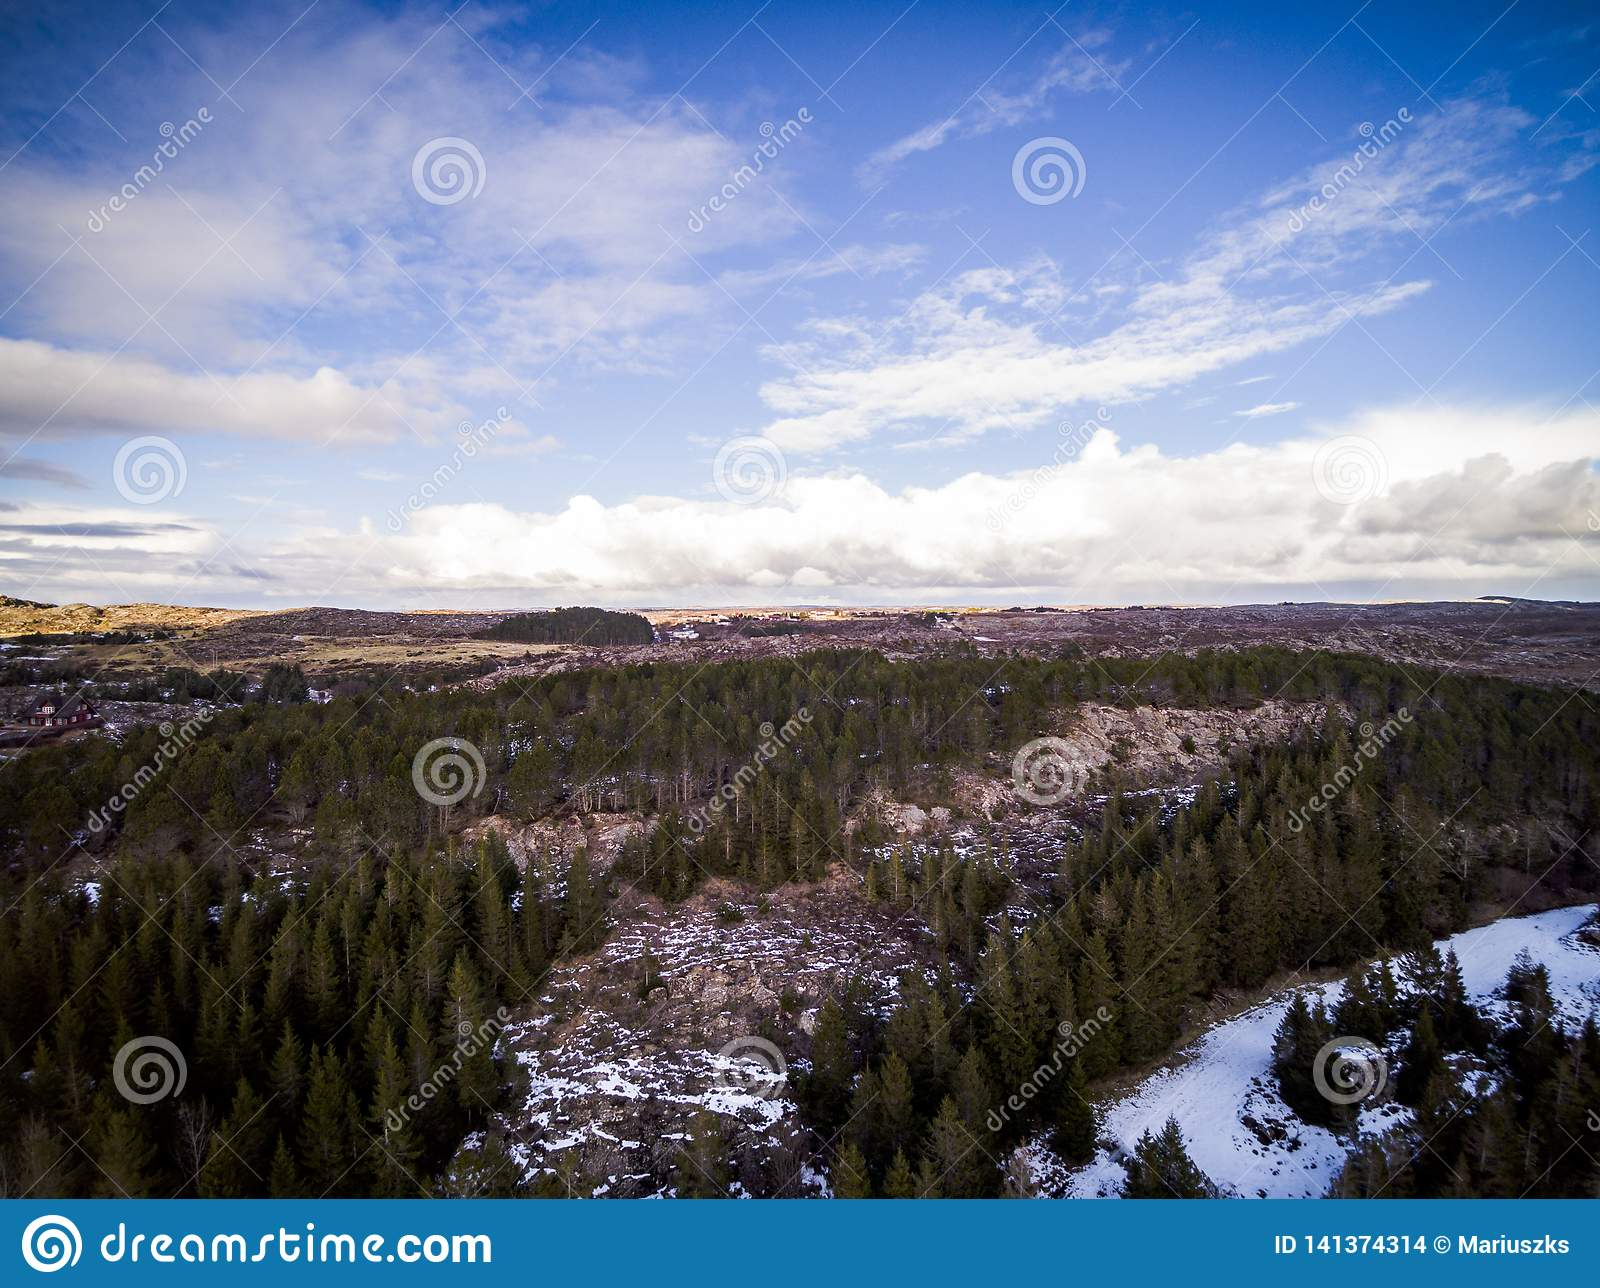 Winter Snow Forest And Frozen From Above Captured With A